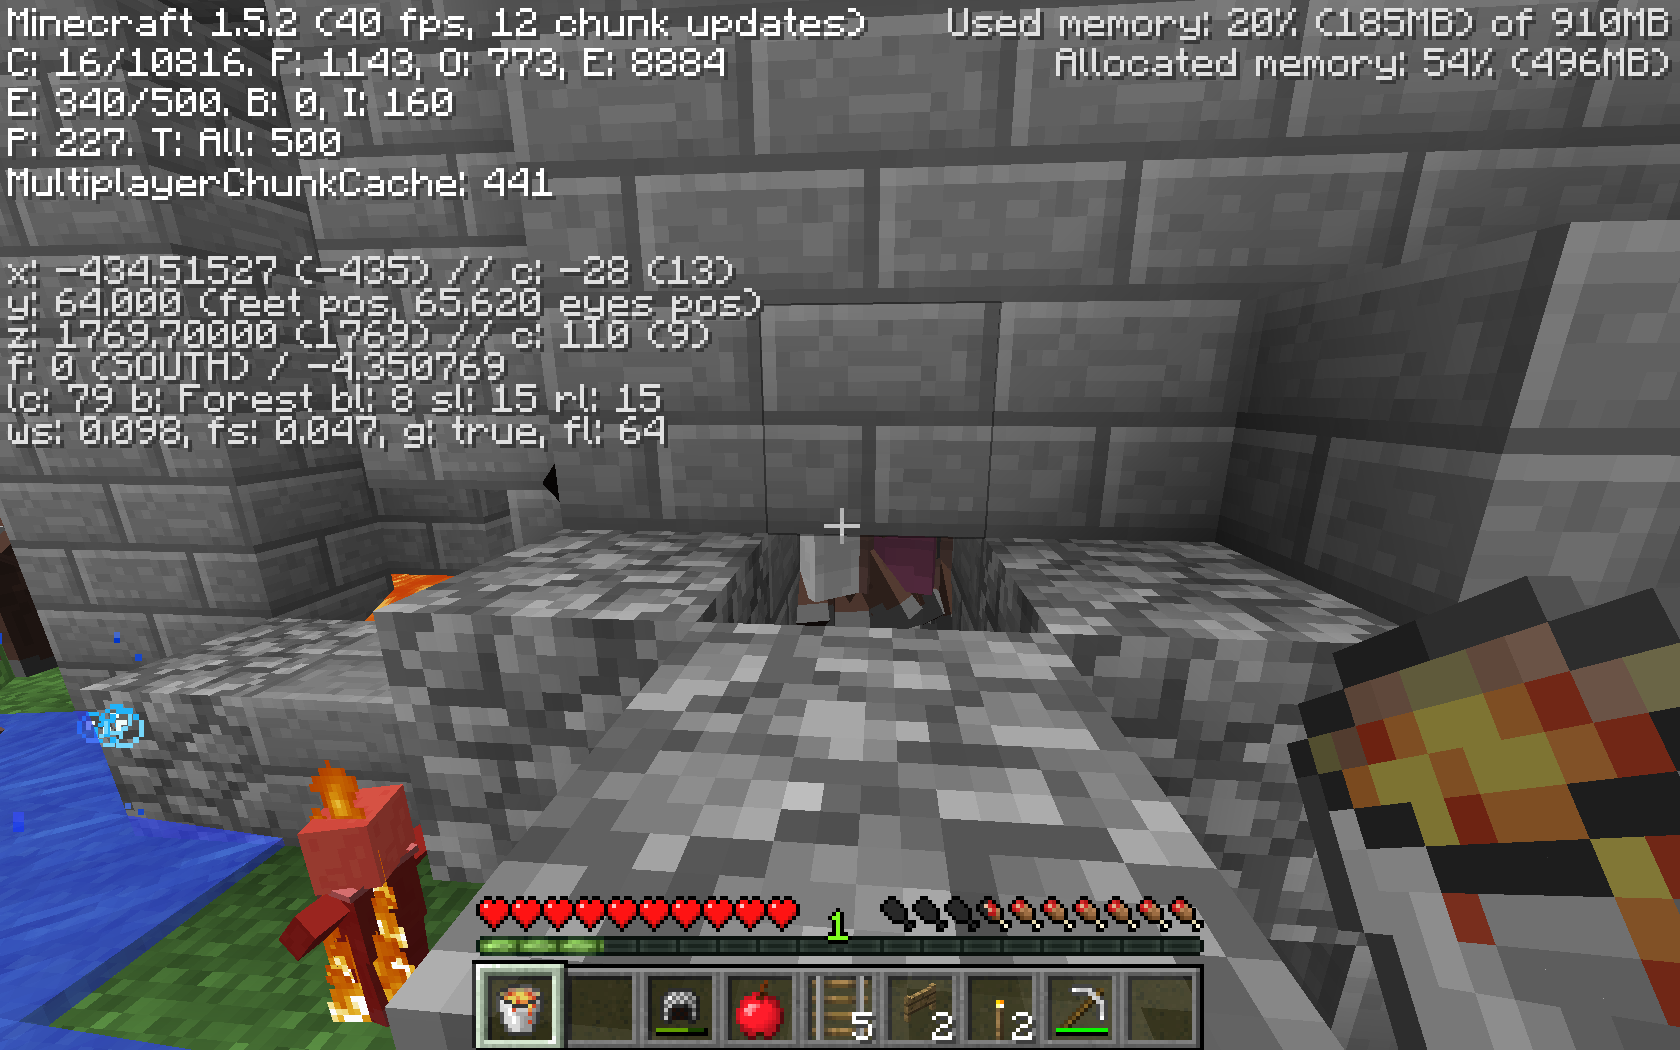 More villagers inside